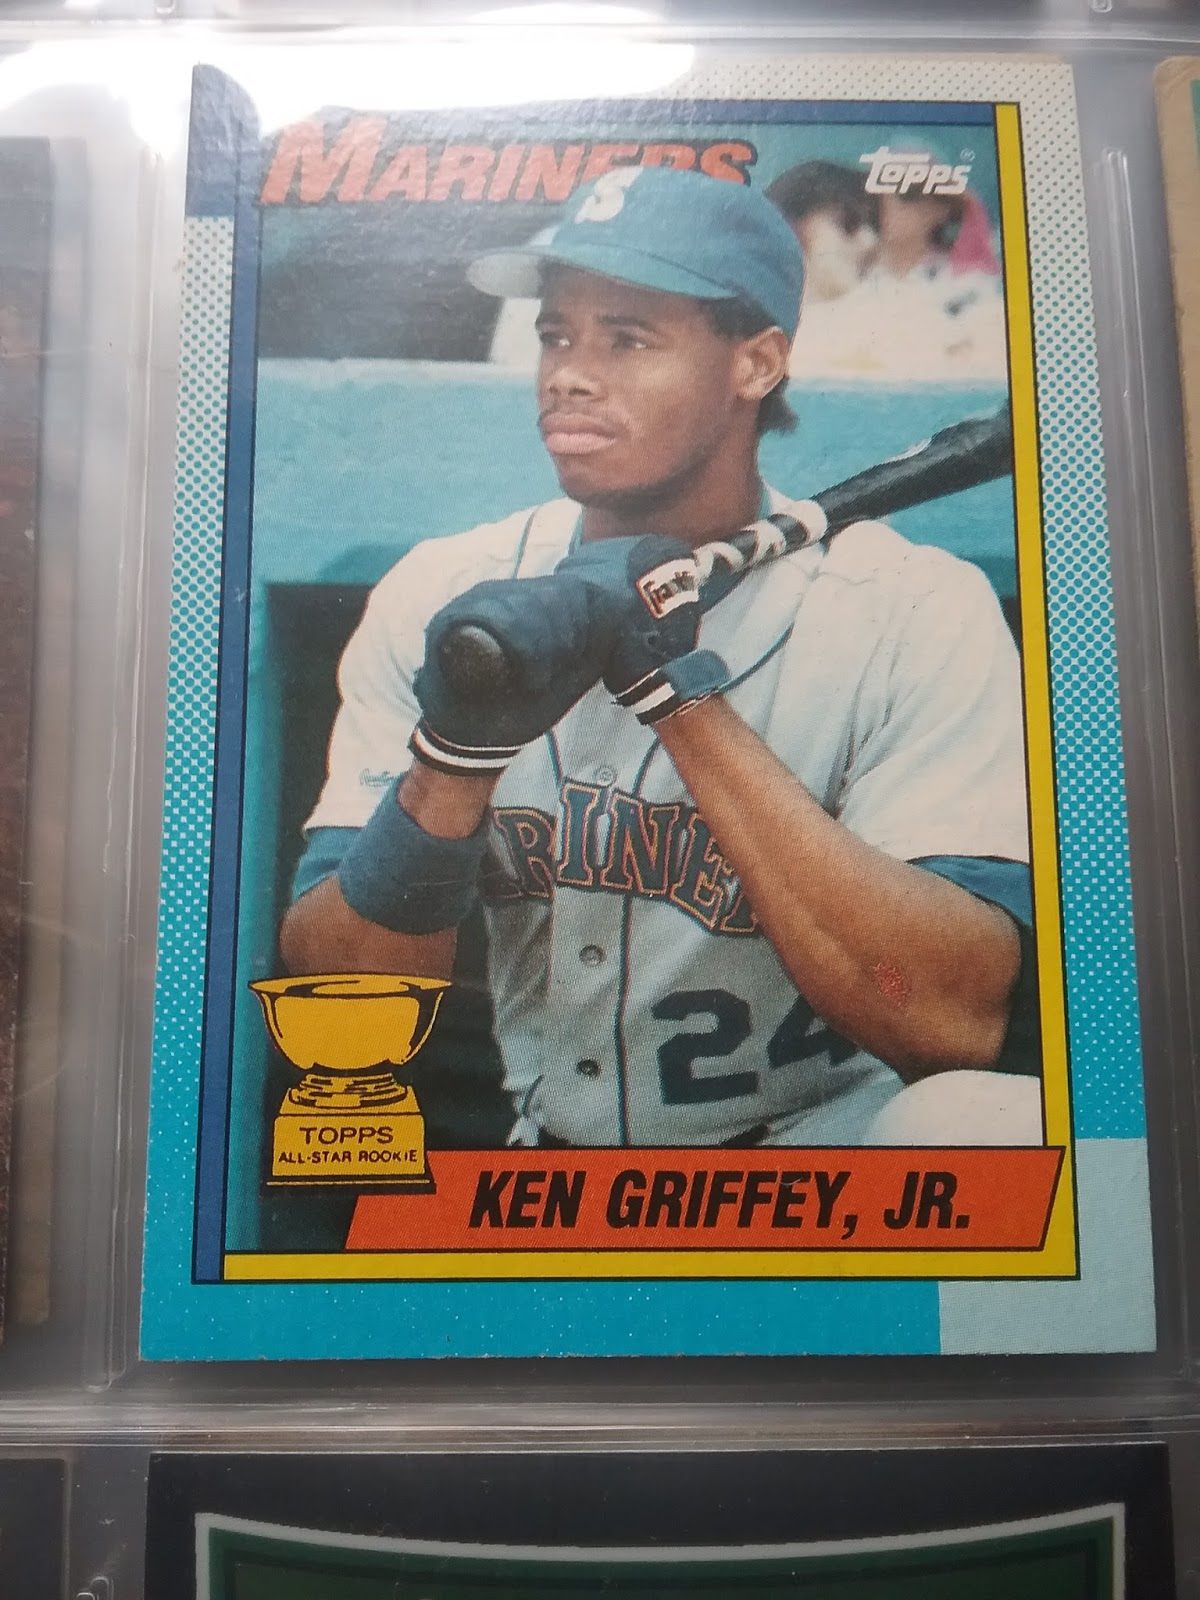 489f1682f6 This is my favorite Griffey, Jr. baseball card...it's much better than the  1989 Upper Deck card that is the darling of the hobby....maybe it's because  the ...